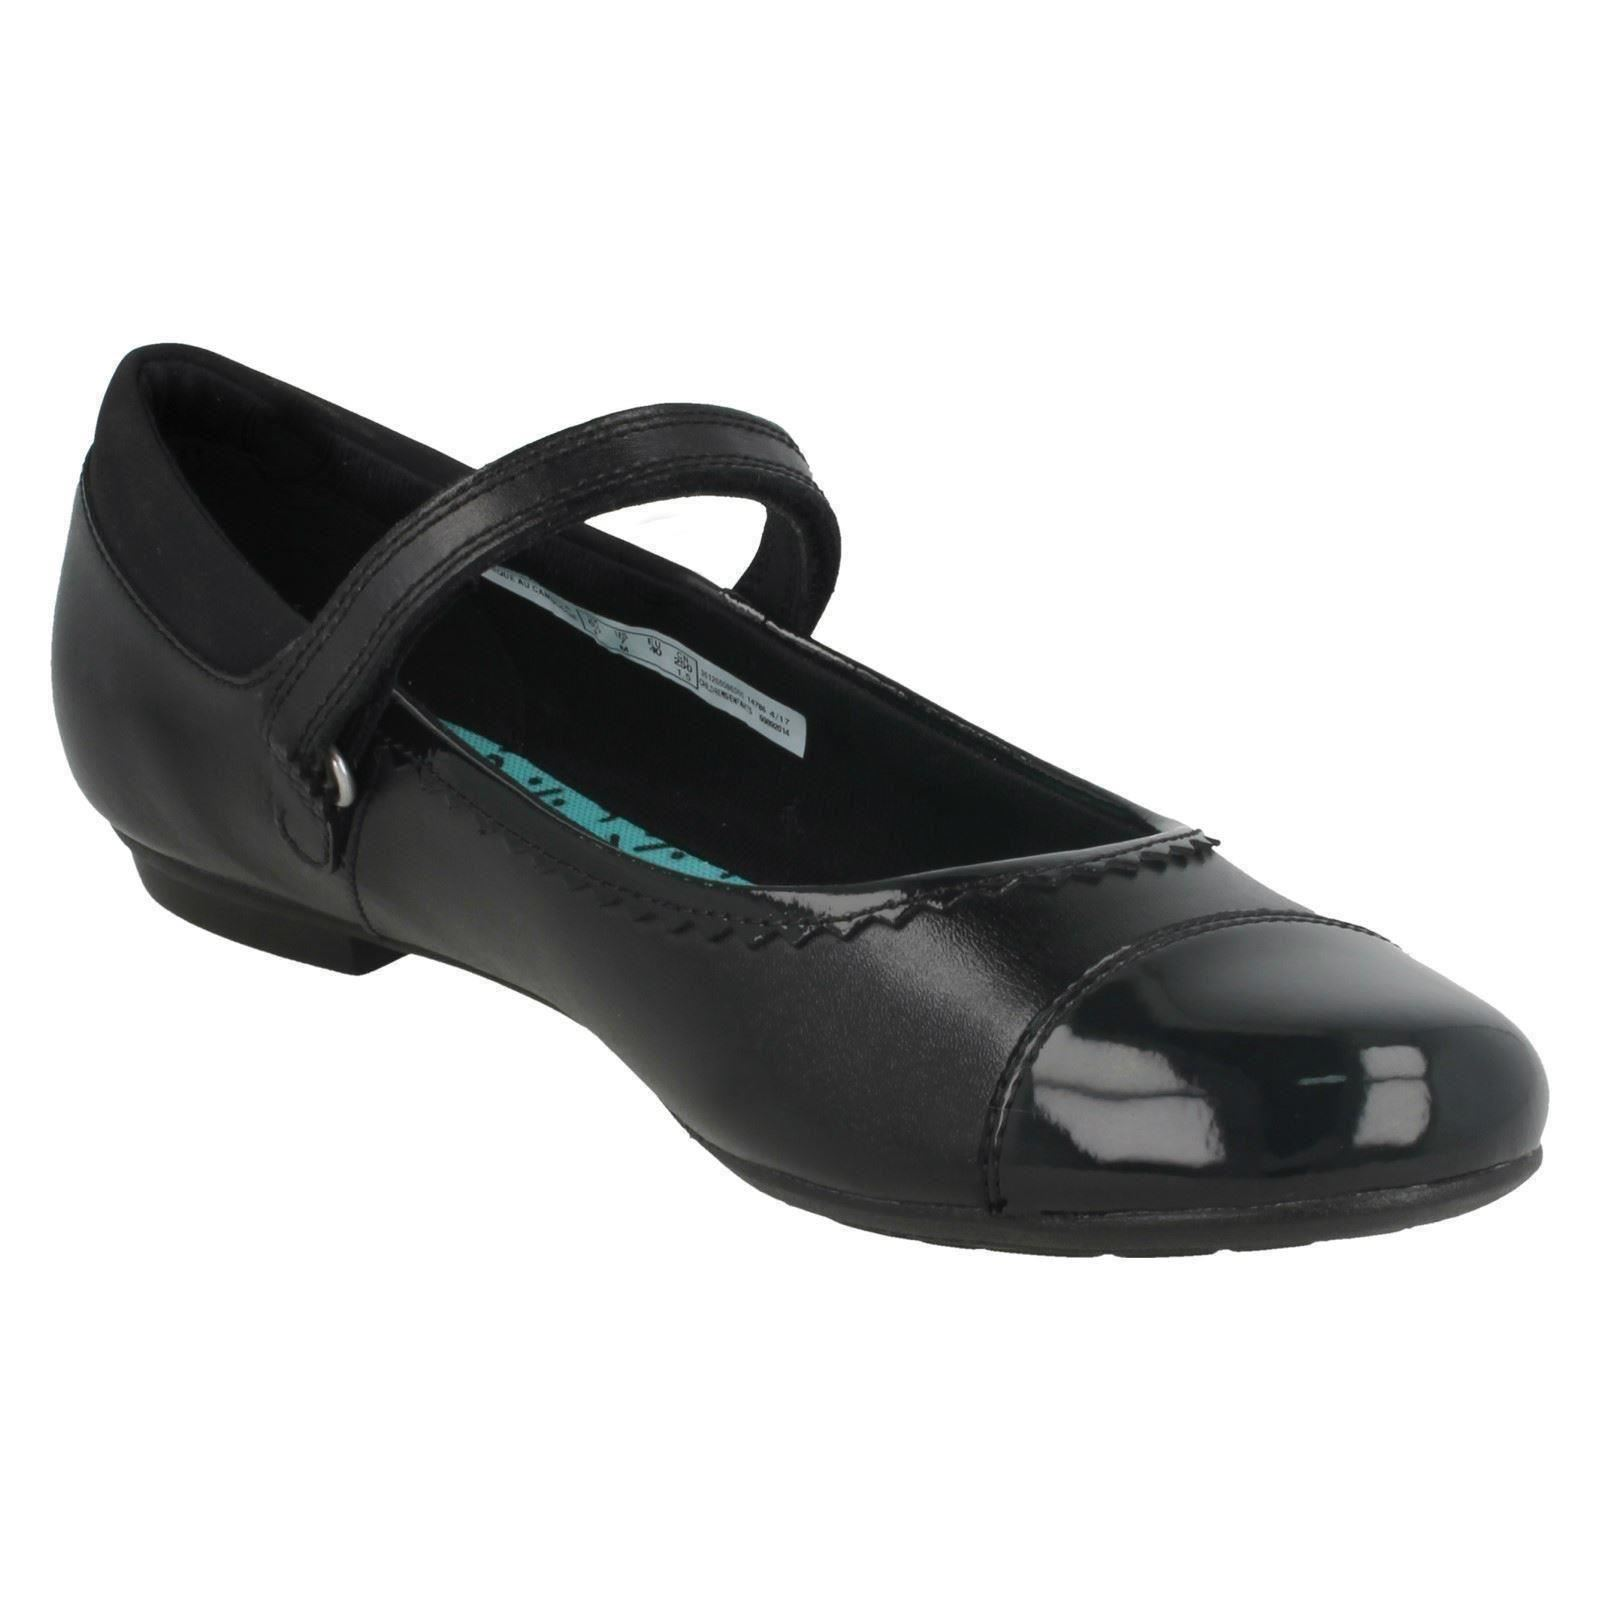 Bootleg By Clarks Girls Patent Toe Cap School Shoes Tizz Ace